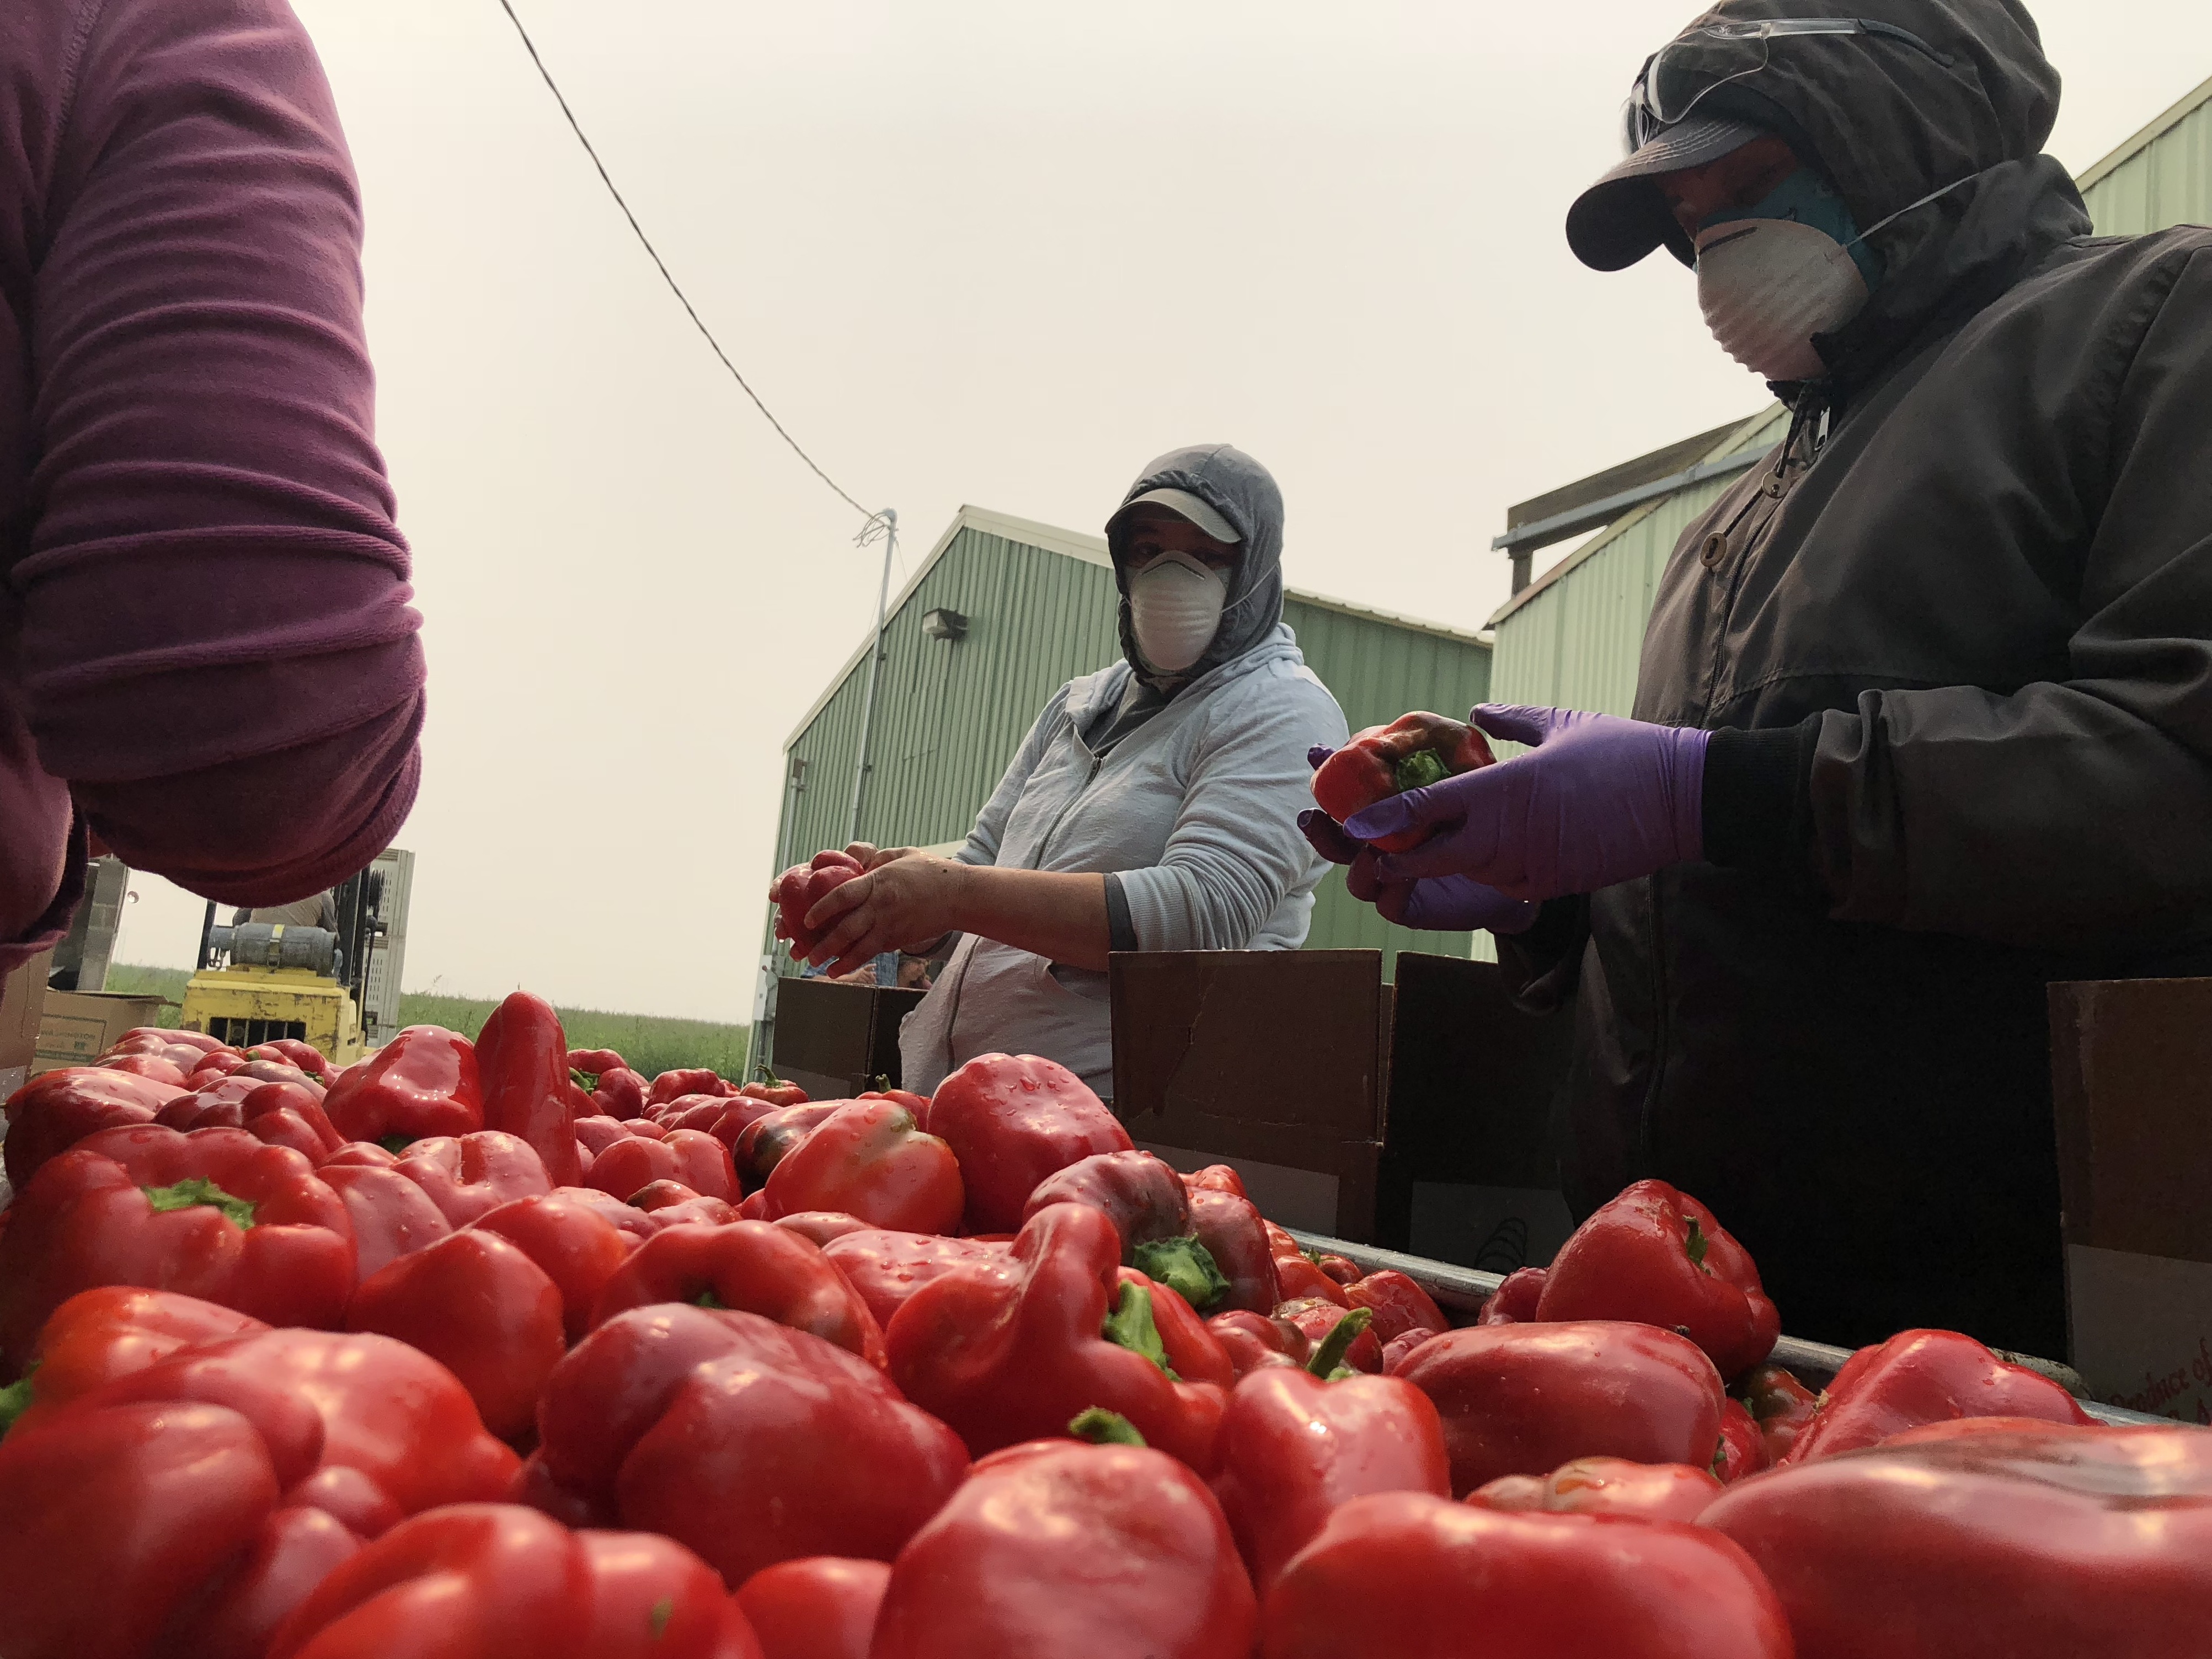 Workers in dust masks wash fresh red bell peppers in smoky conditions outside of Eltopia, Wash. Even with the masks, the smoke is still causing tight chests, itchy eyes and dry throats. (Anna King/Northwest News Network)